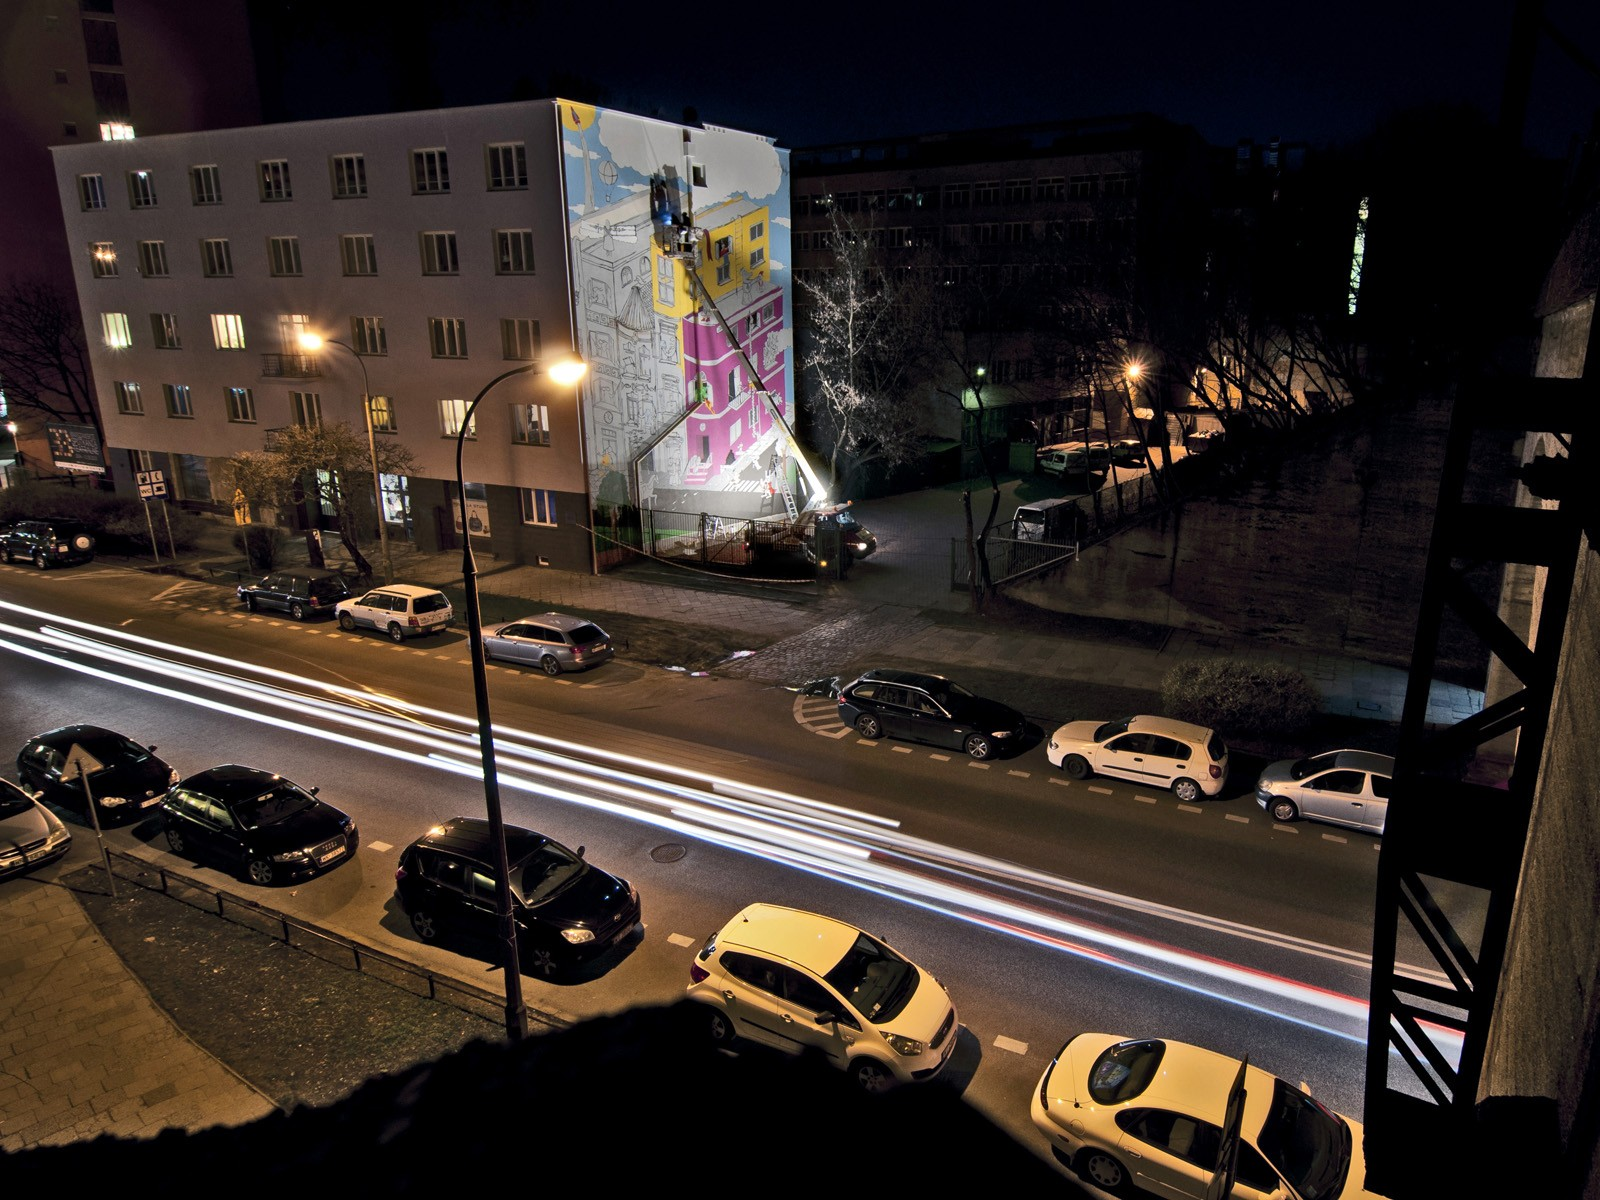 Empik advertising mural It's about reading - Warsaw Powisle Solec 85 street | World Book Day | Portfolio